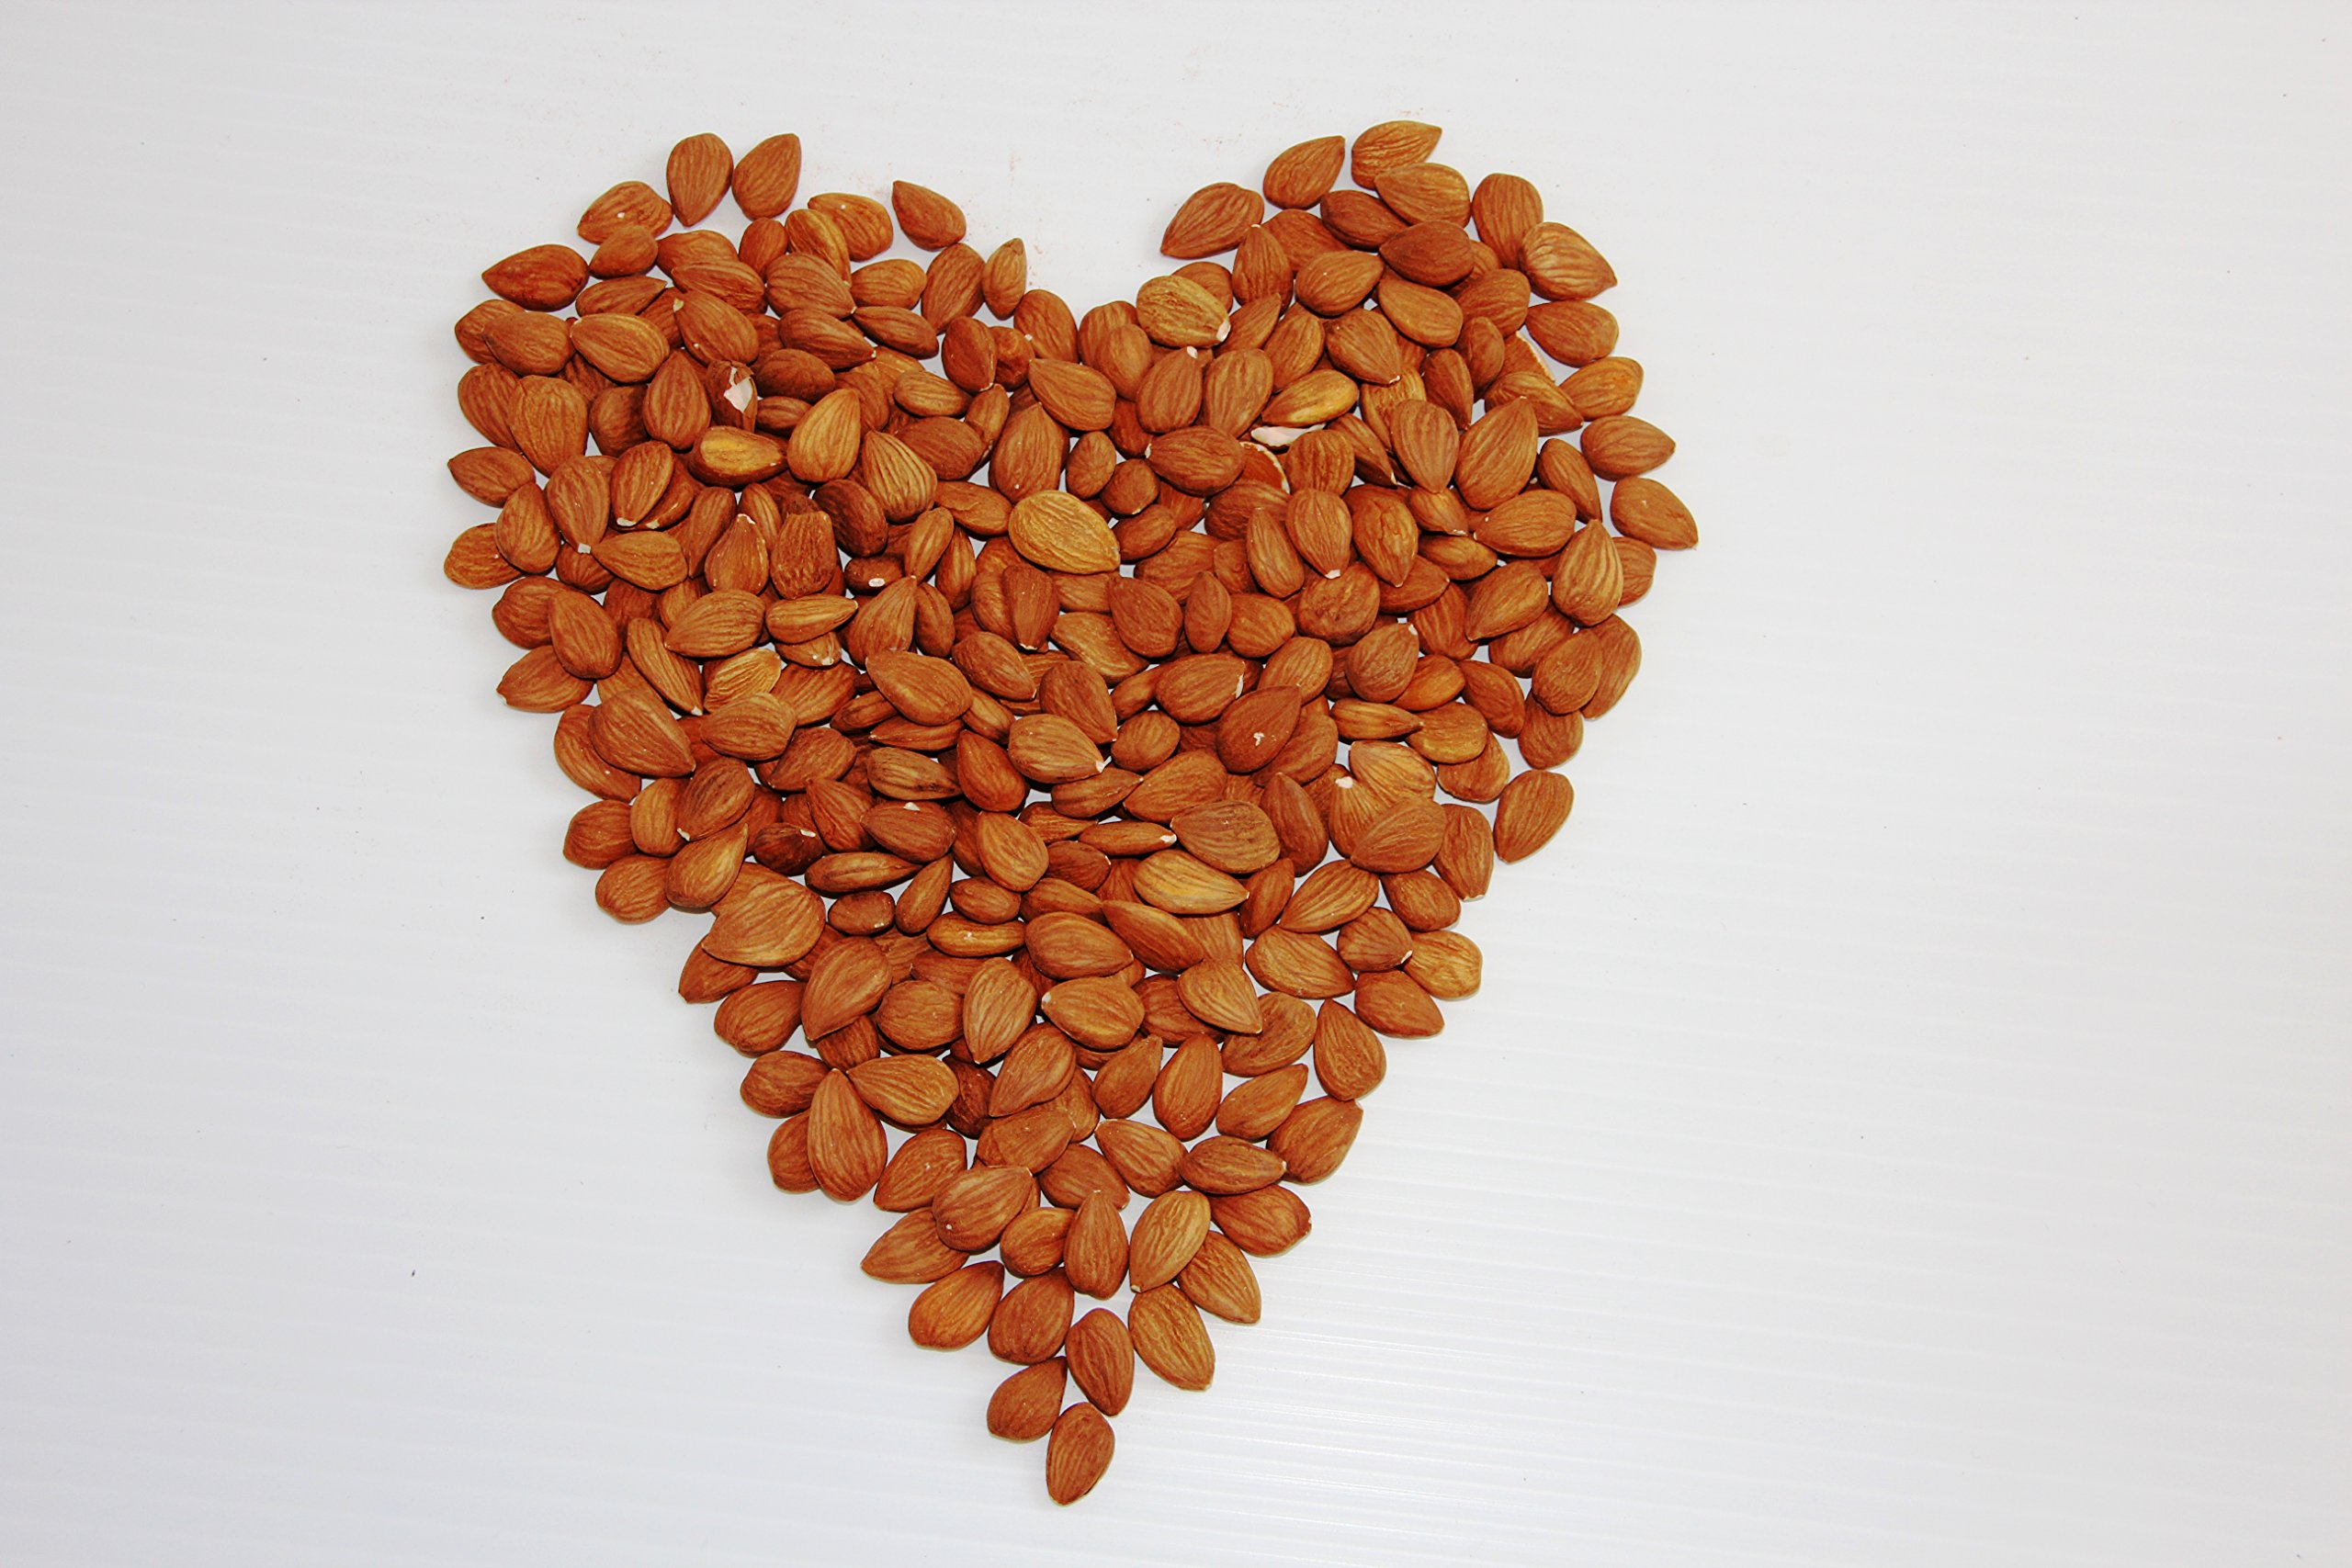 Our Father's Farm Extremely Bitter Certified Organic Raw Apricot Kernels (2 Pounds / 908 grams)